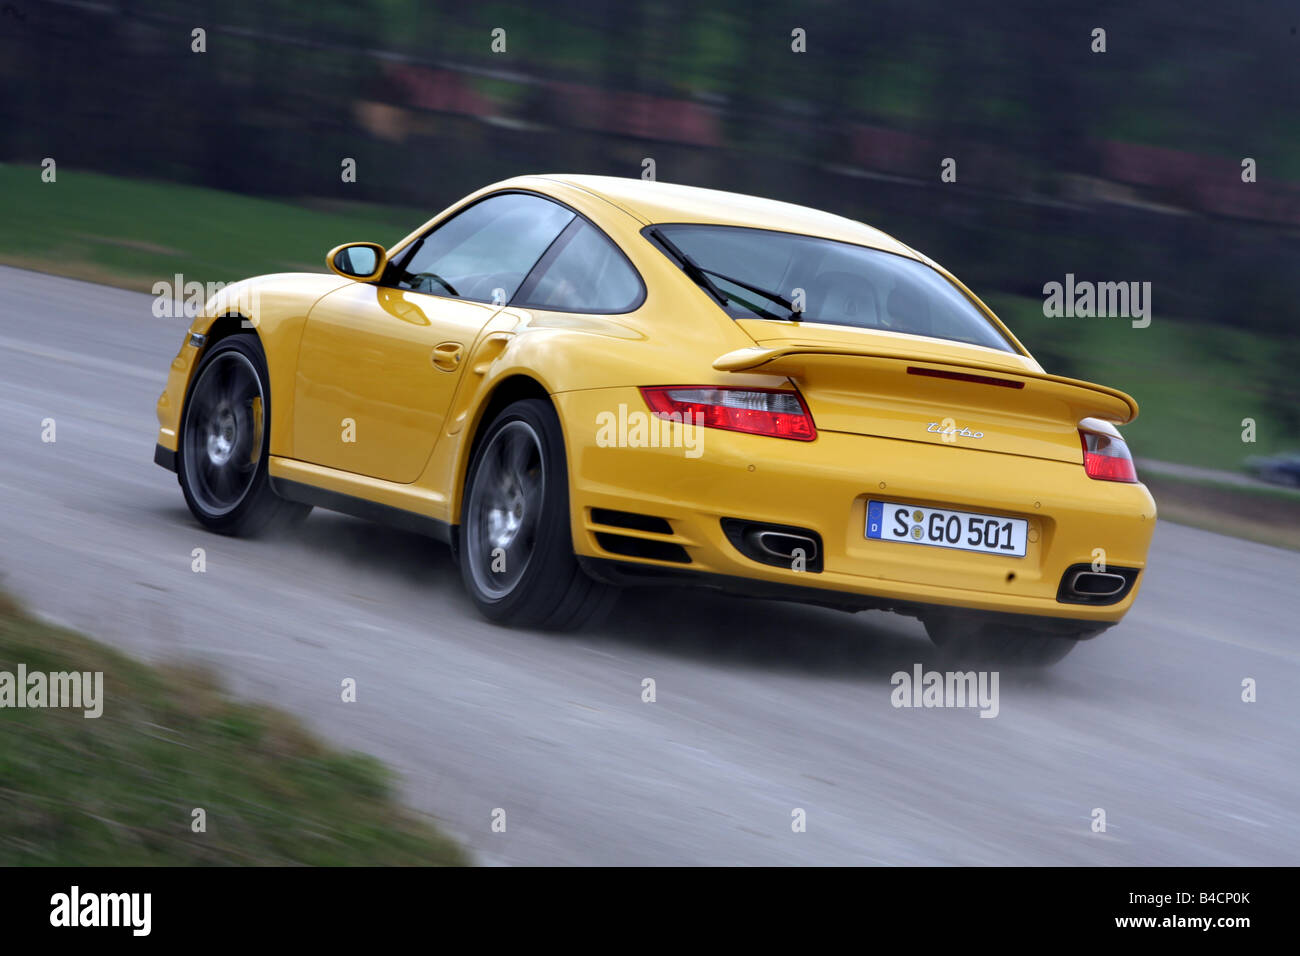 Porsche 911 turbo, model year 2006-, yellow, driving, diagonal from the back, rear view, country road - Stock Image